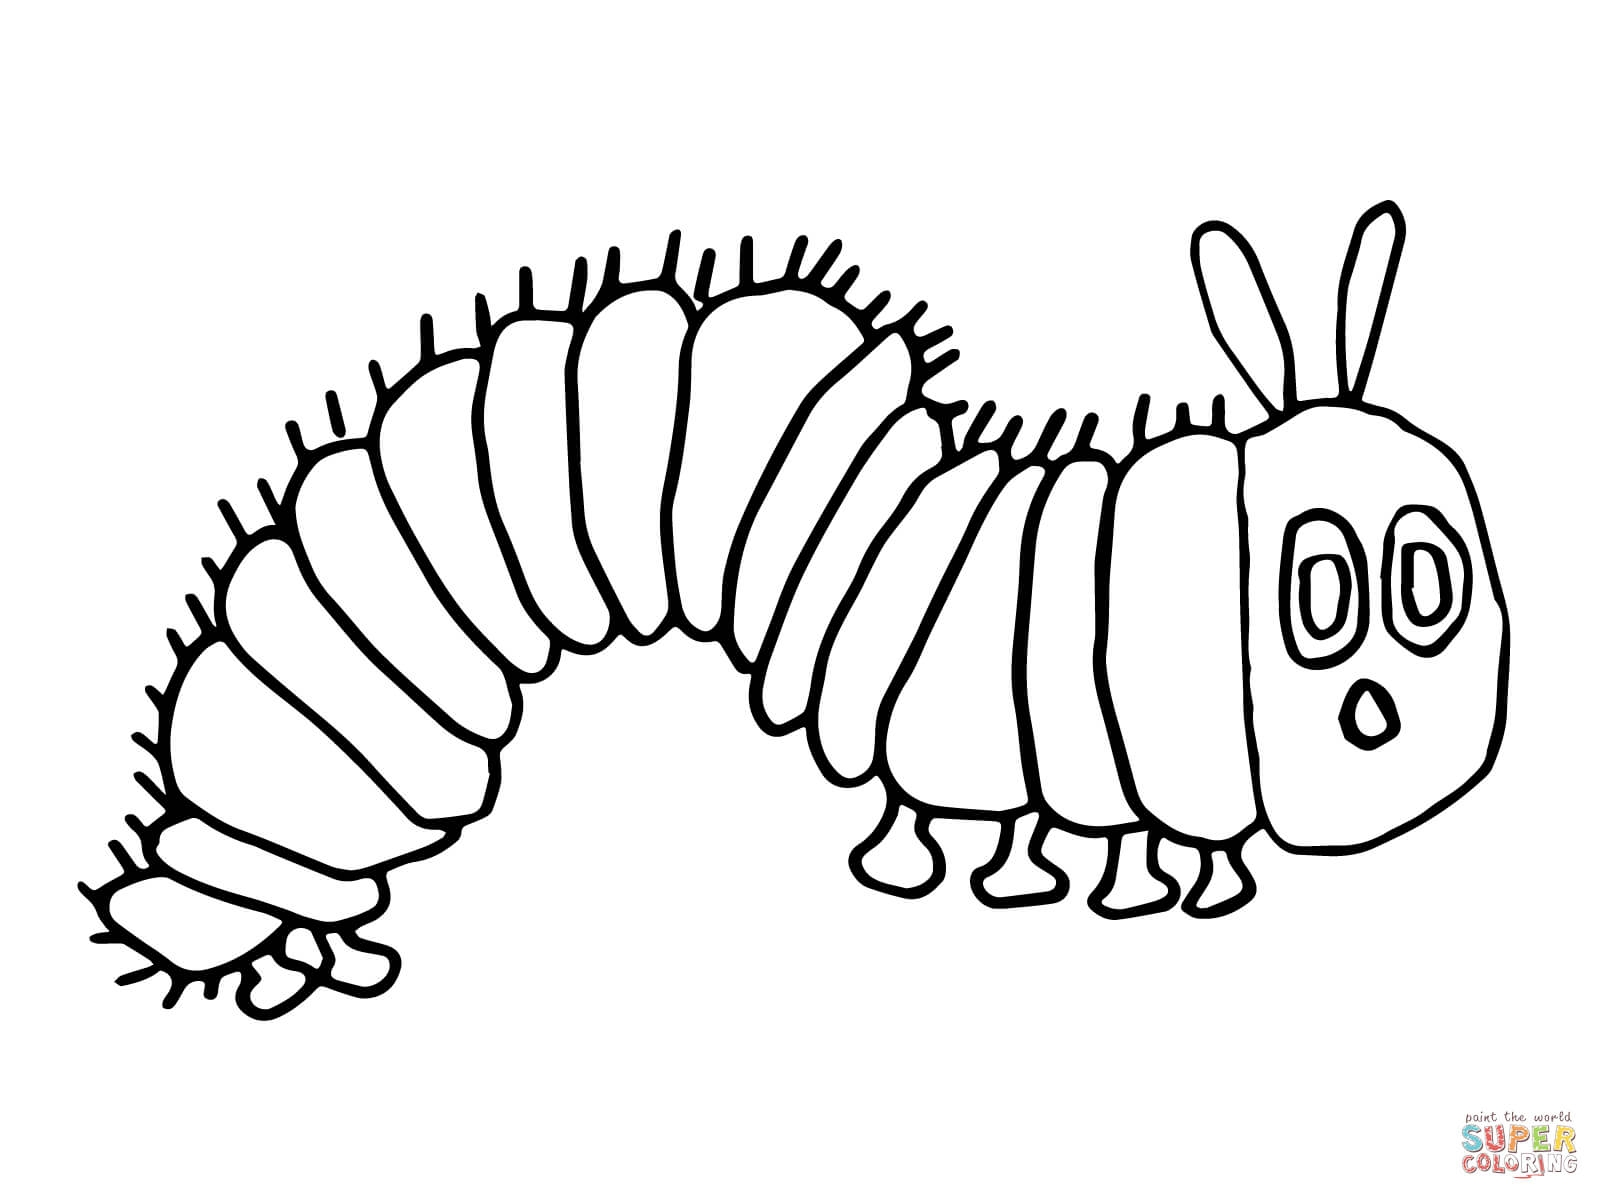 very hungry caterpillar coloring page - hungry caterpillar